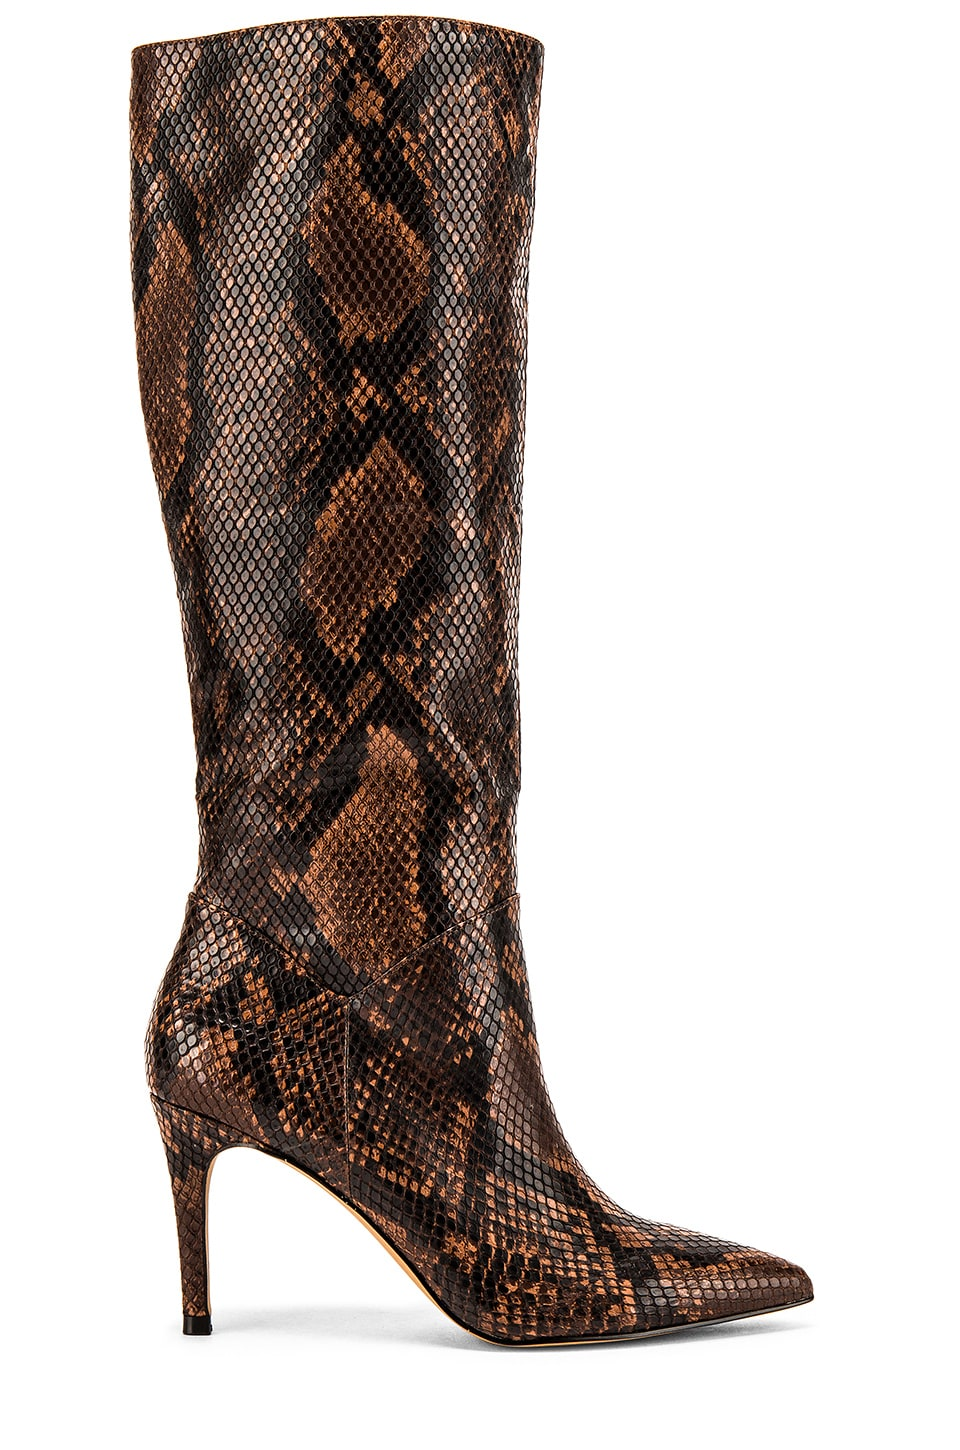 Steve Madden Kinga Boot in Brown Snake